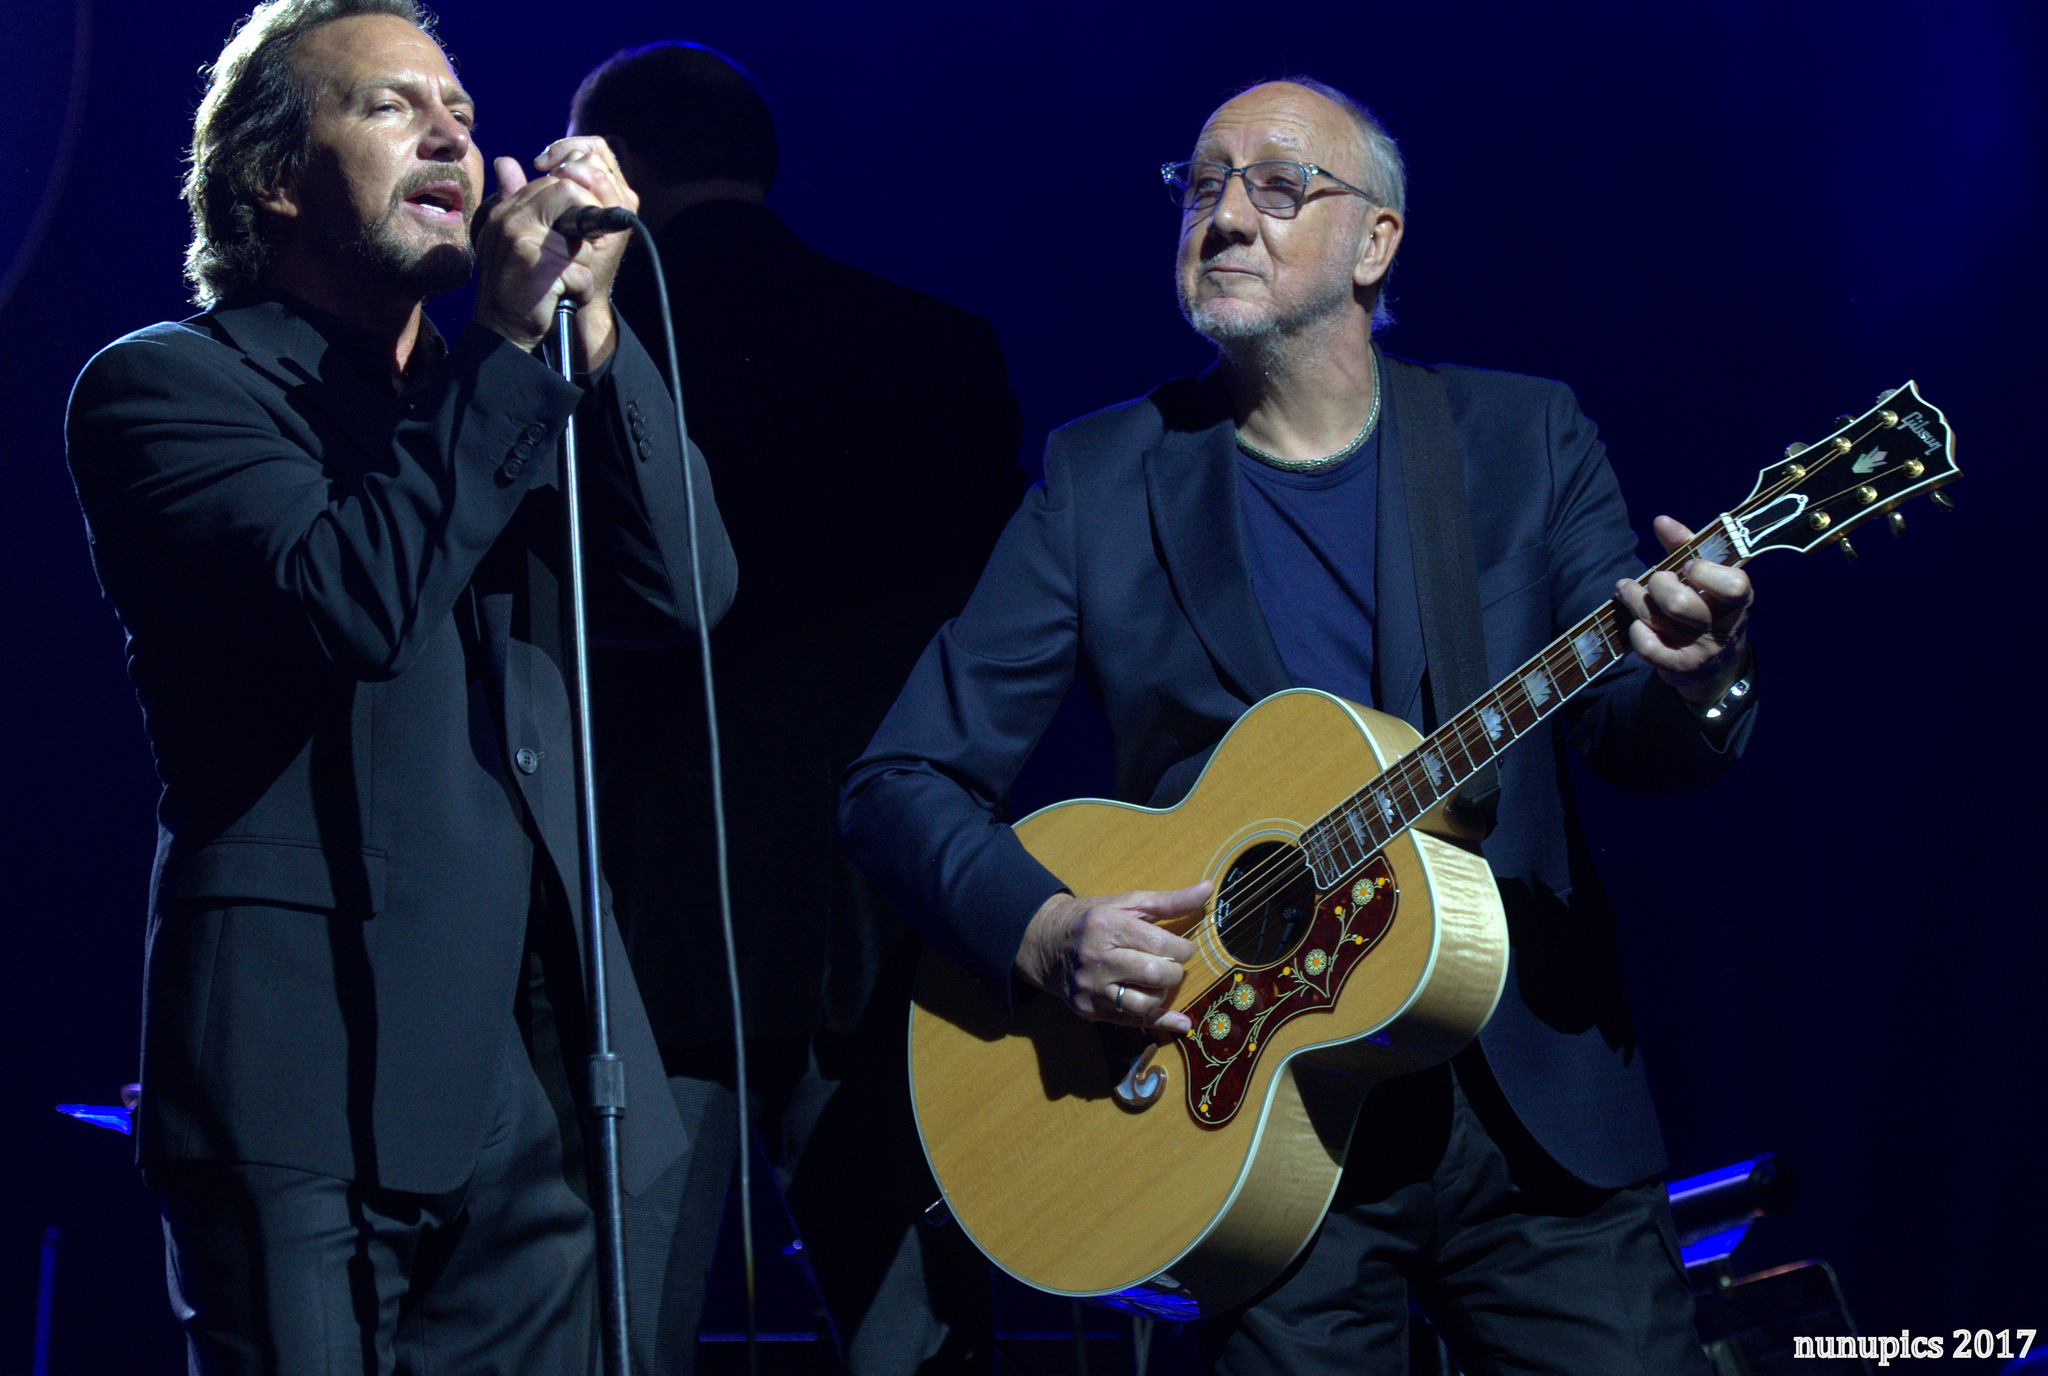 Pete & Eddie Toast 20 Year Friendship With Quadrophenia Spectacle [Photos / Video]